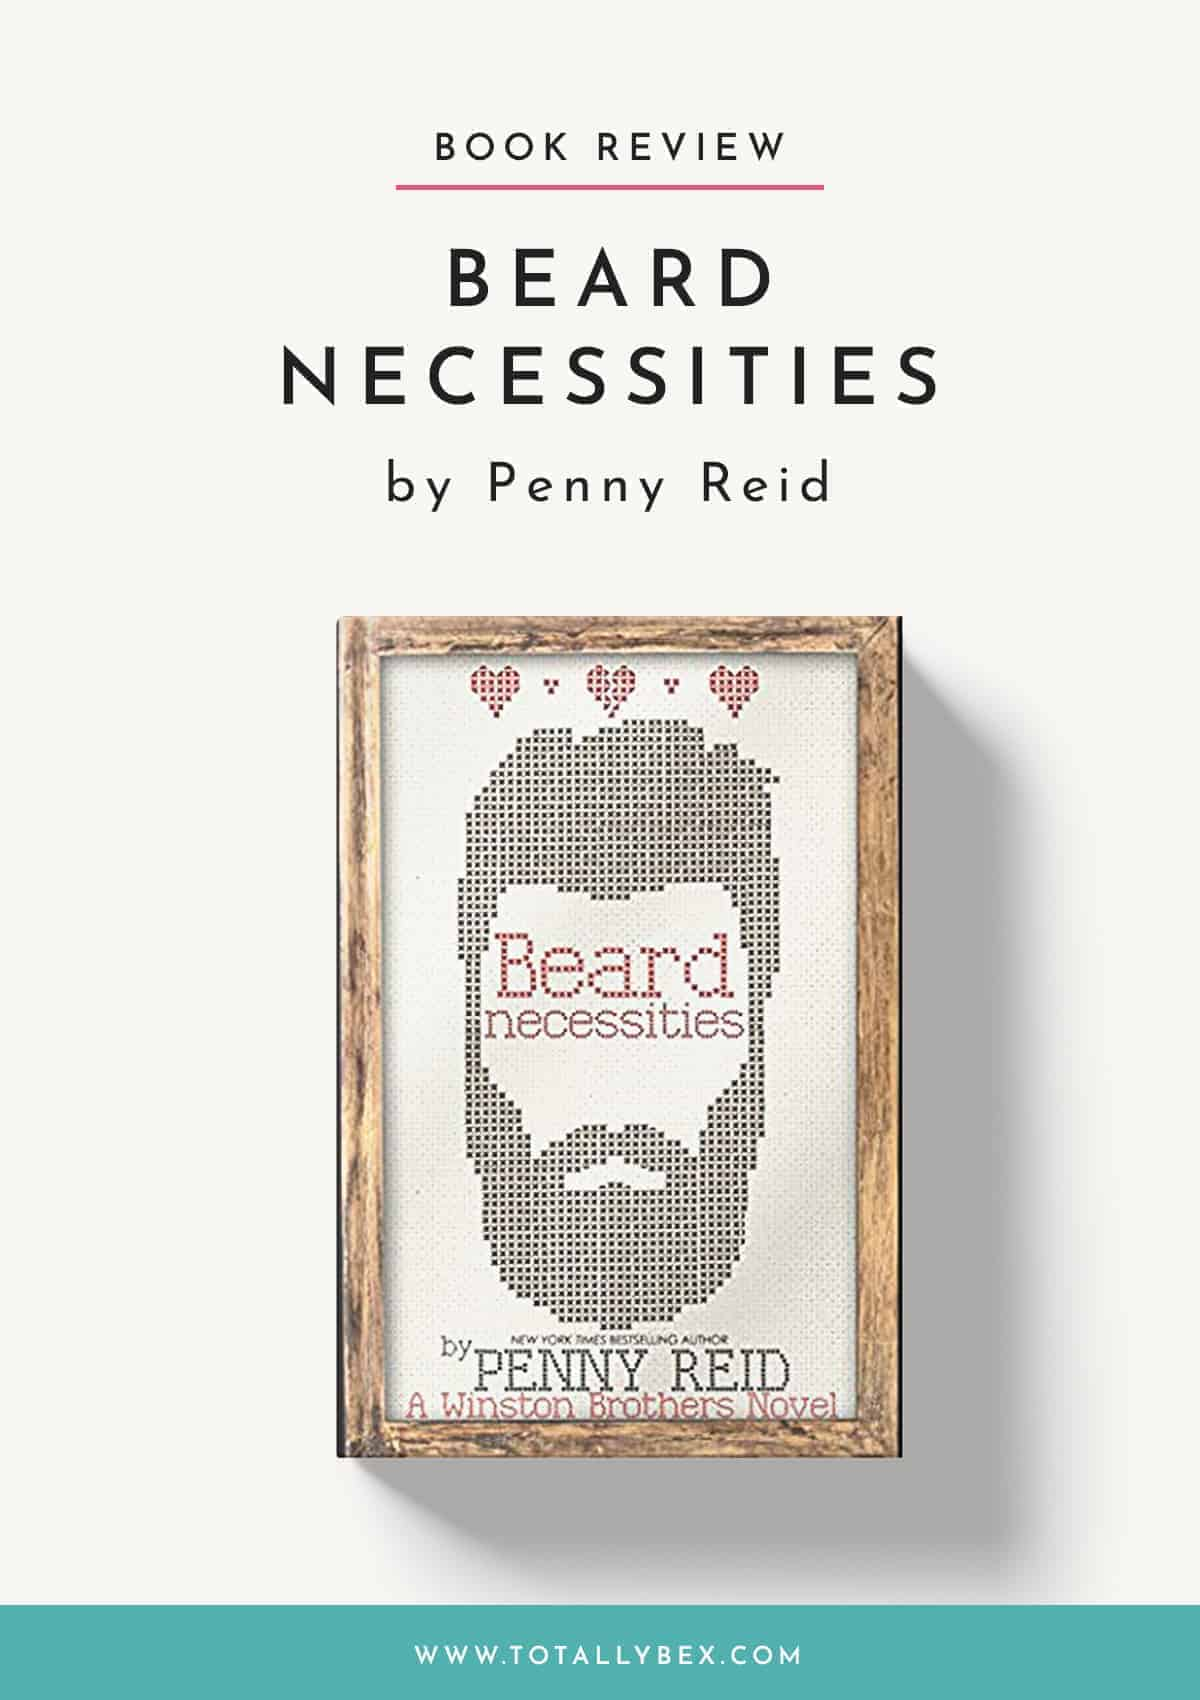 Beard Necessities by Penny Reid-Book Review